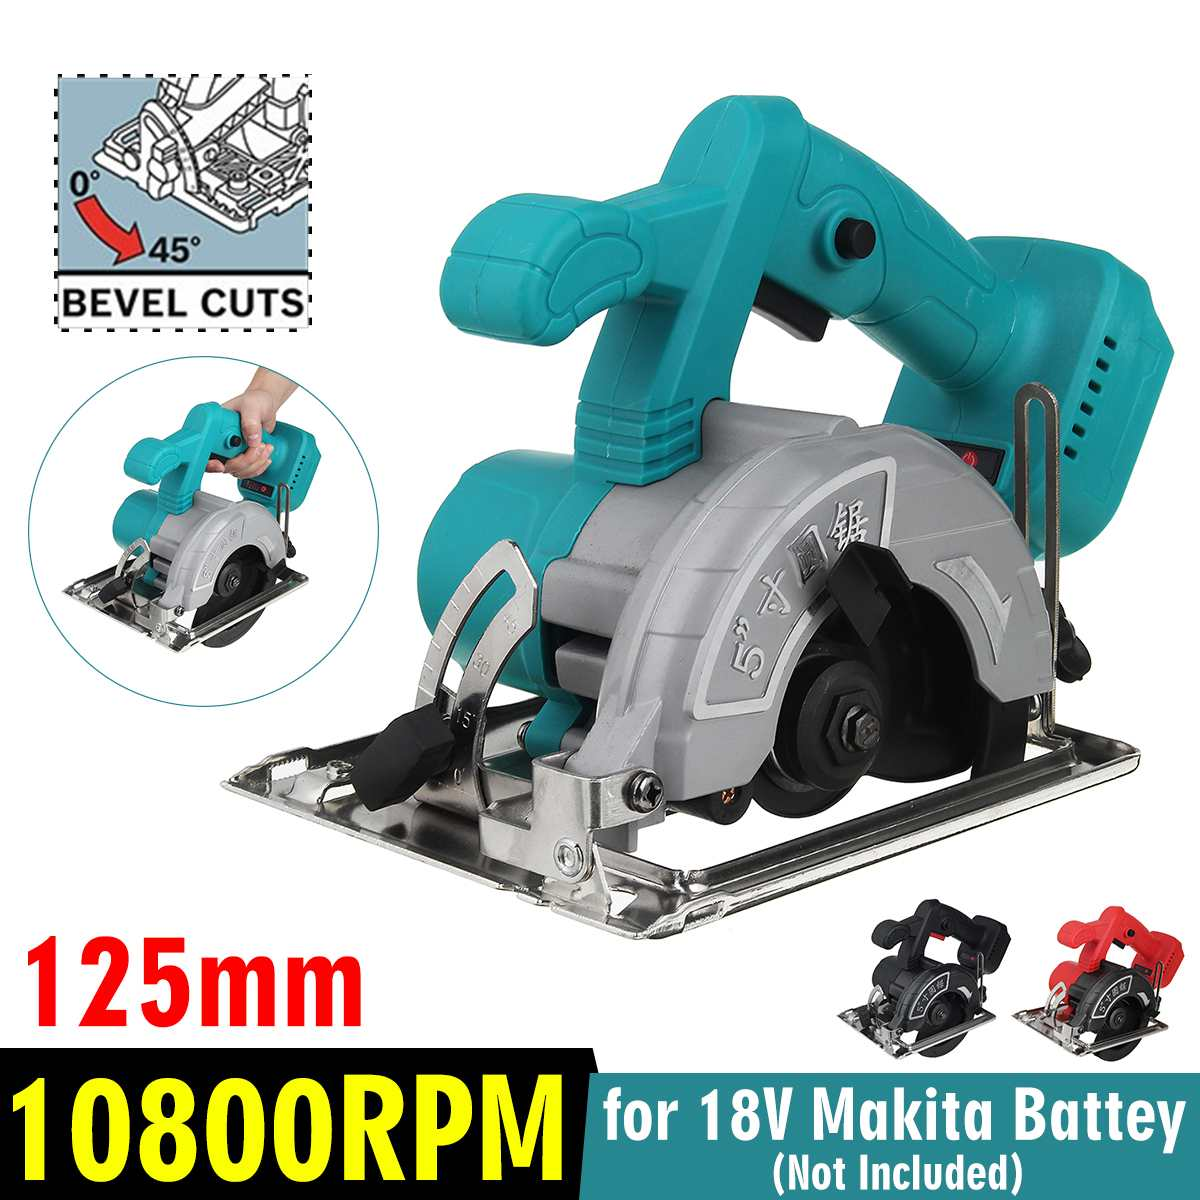 125mm  Machine  Circular Cutting  Saw Adjustable 0  Power 45 To   Electric For Battery 10800RPM Makita 18V  Tools Multifunction